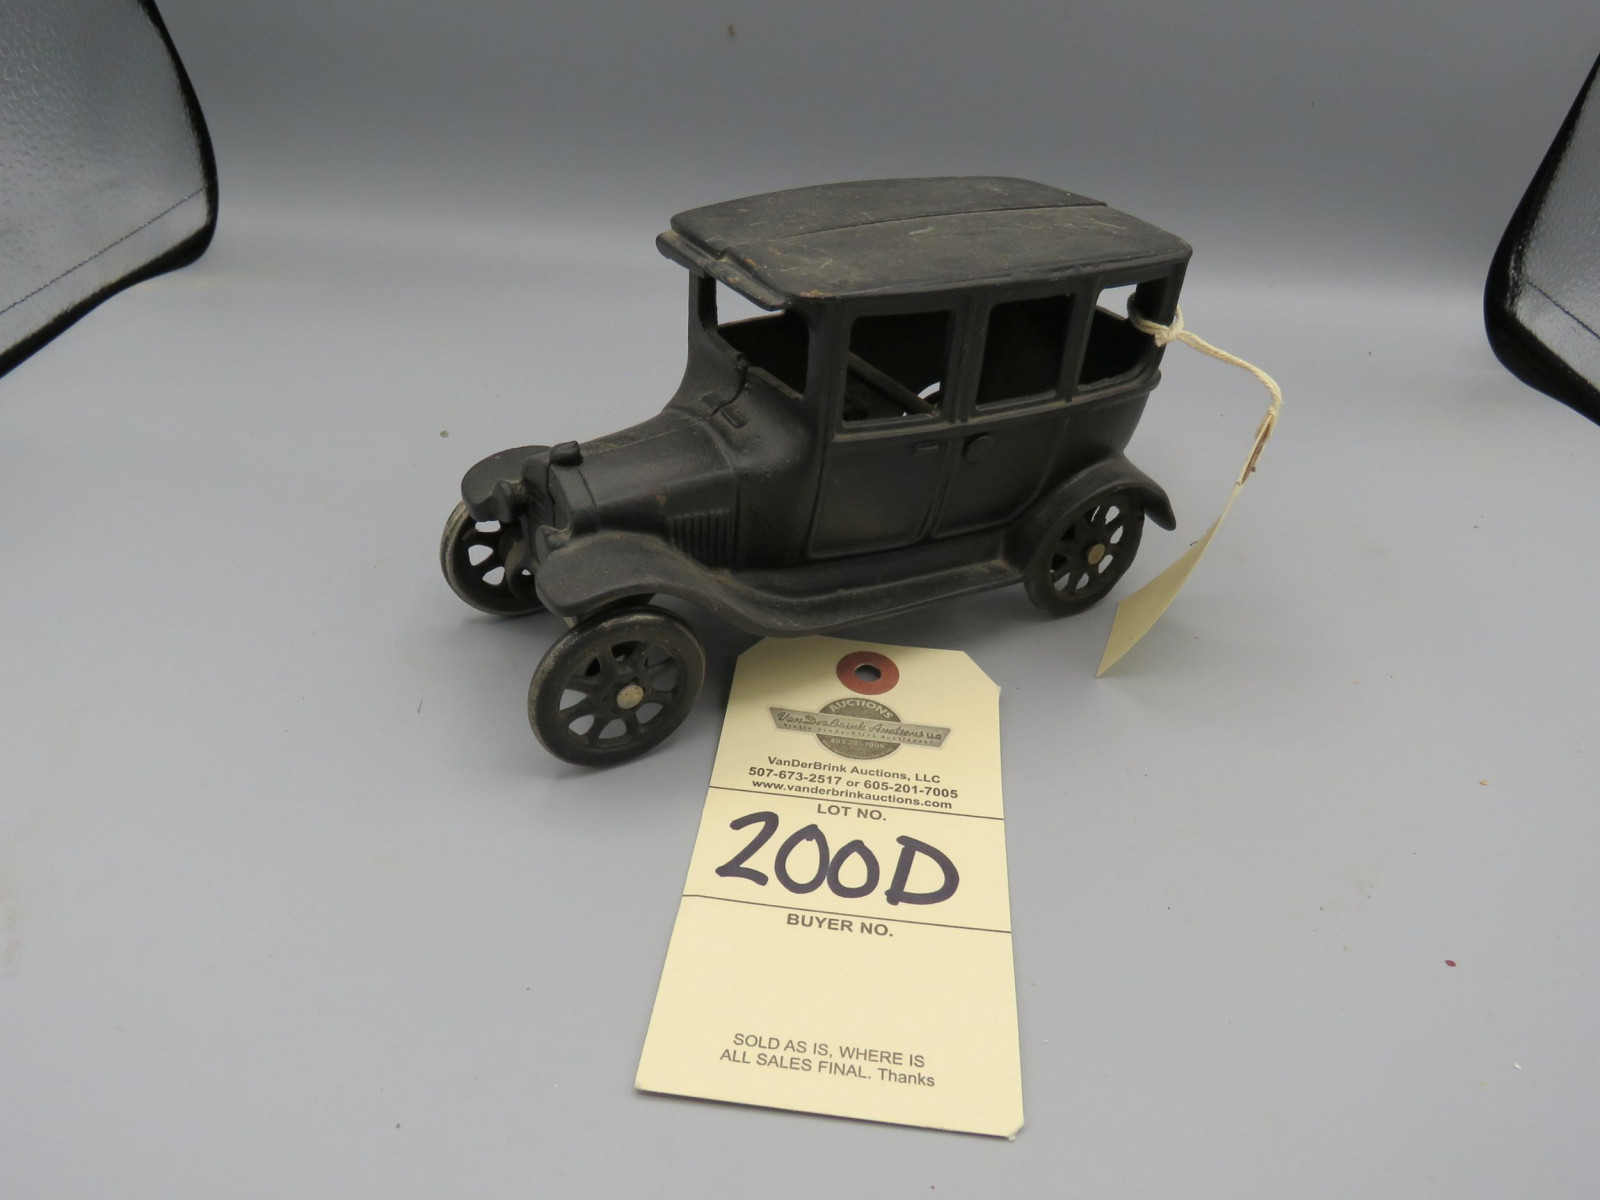 Arcade Cast Iron Ford Model T @1924 Approx. 6 inches - Image 1